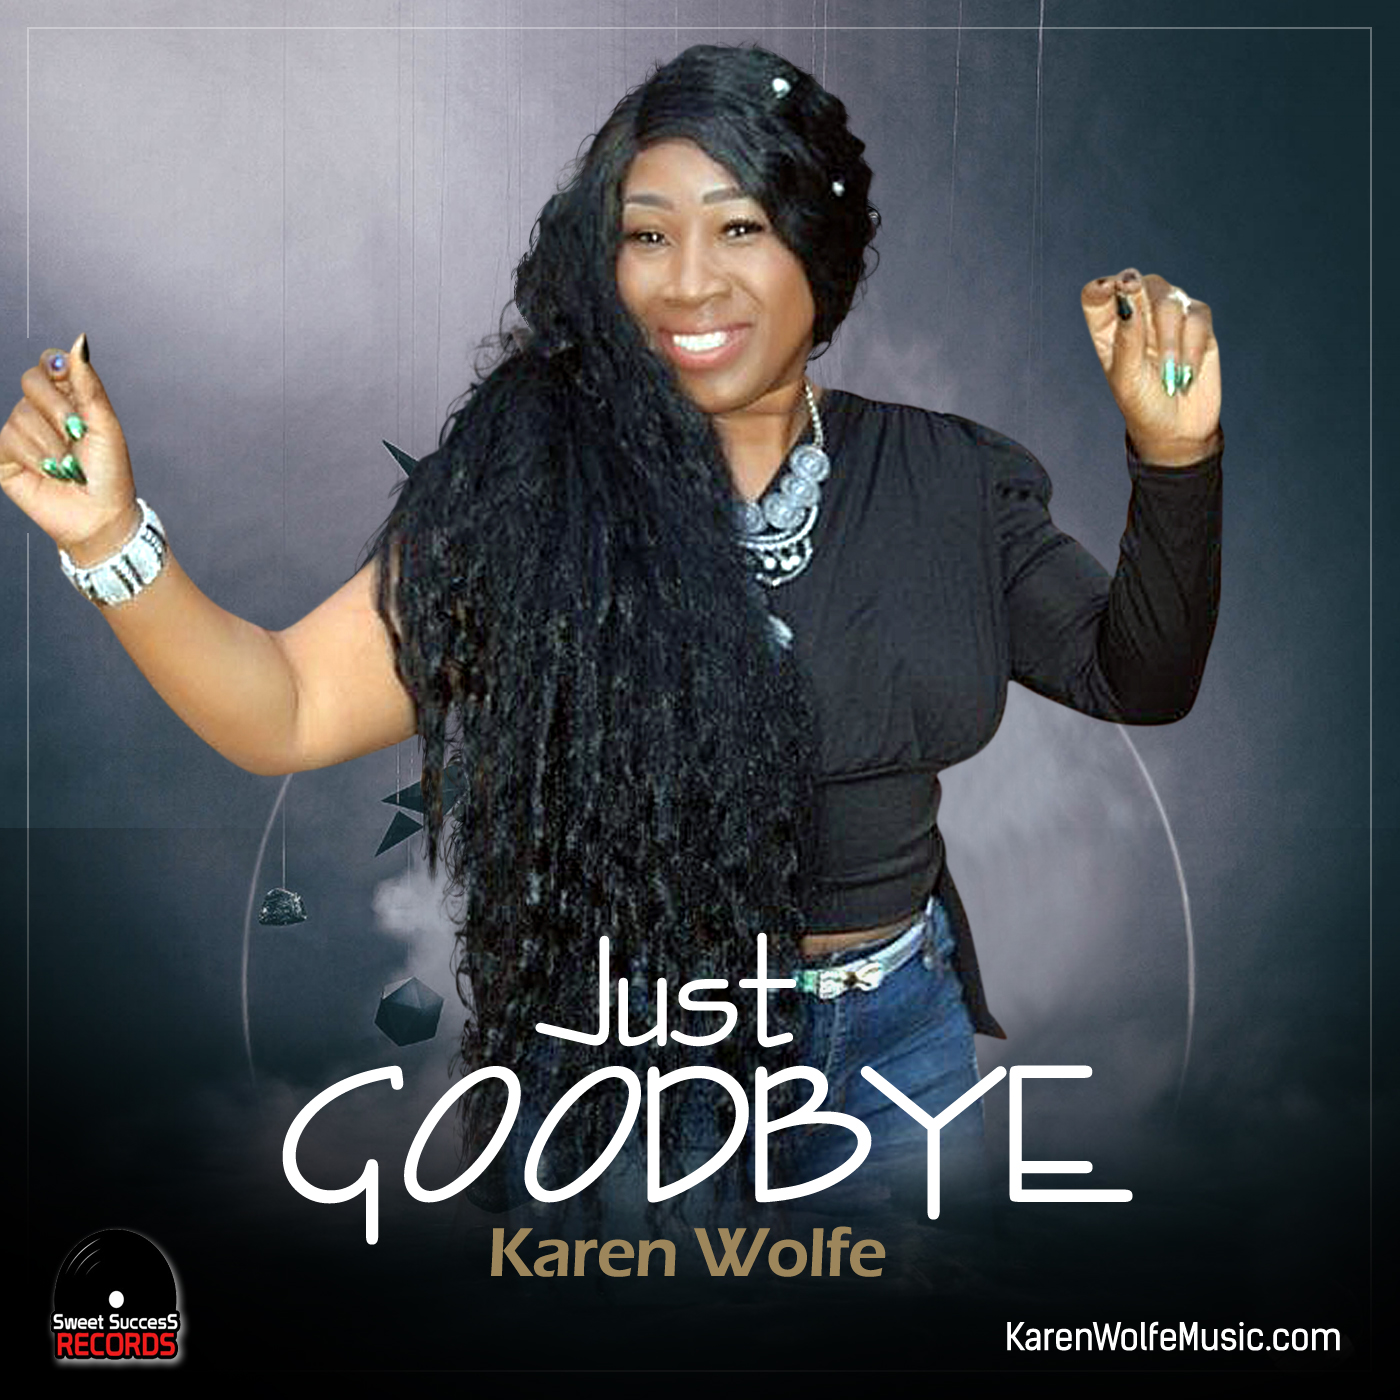 """Karen Wolfe Wastes No Time Taking Out the Trash in Her Powerful Single """"Just Goodbye"""""""